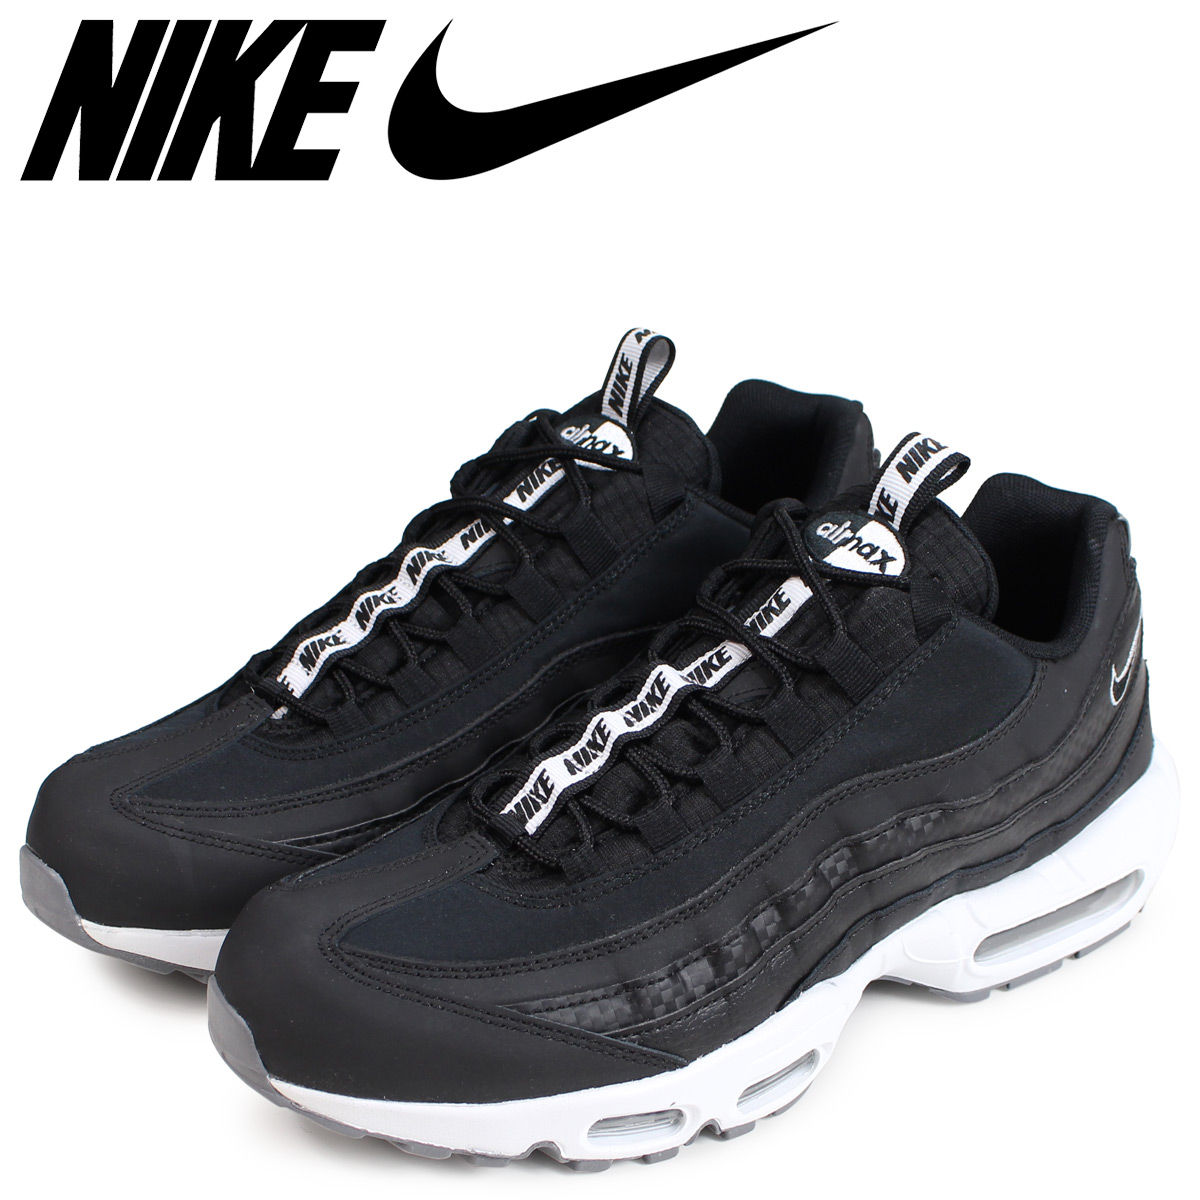 wholesale dealer 87151 ea5b1 NIKE Kie Ney AMAX 95 sneakers men AIR MAX 95 SE black AQ4129-002  12 10  Shinnyu load